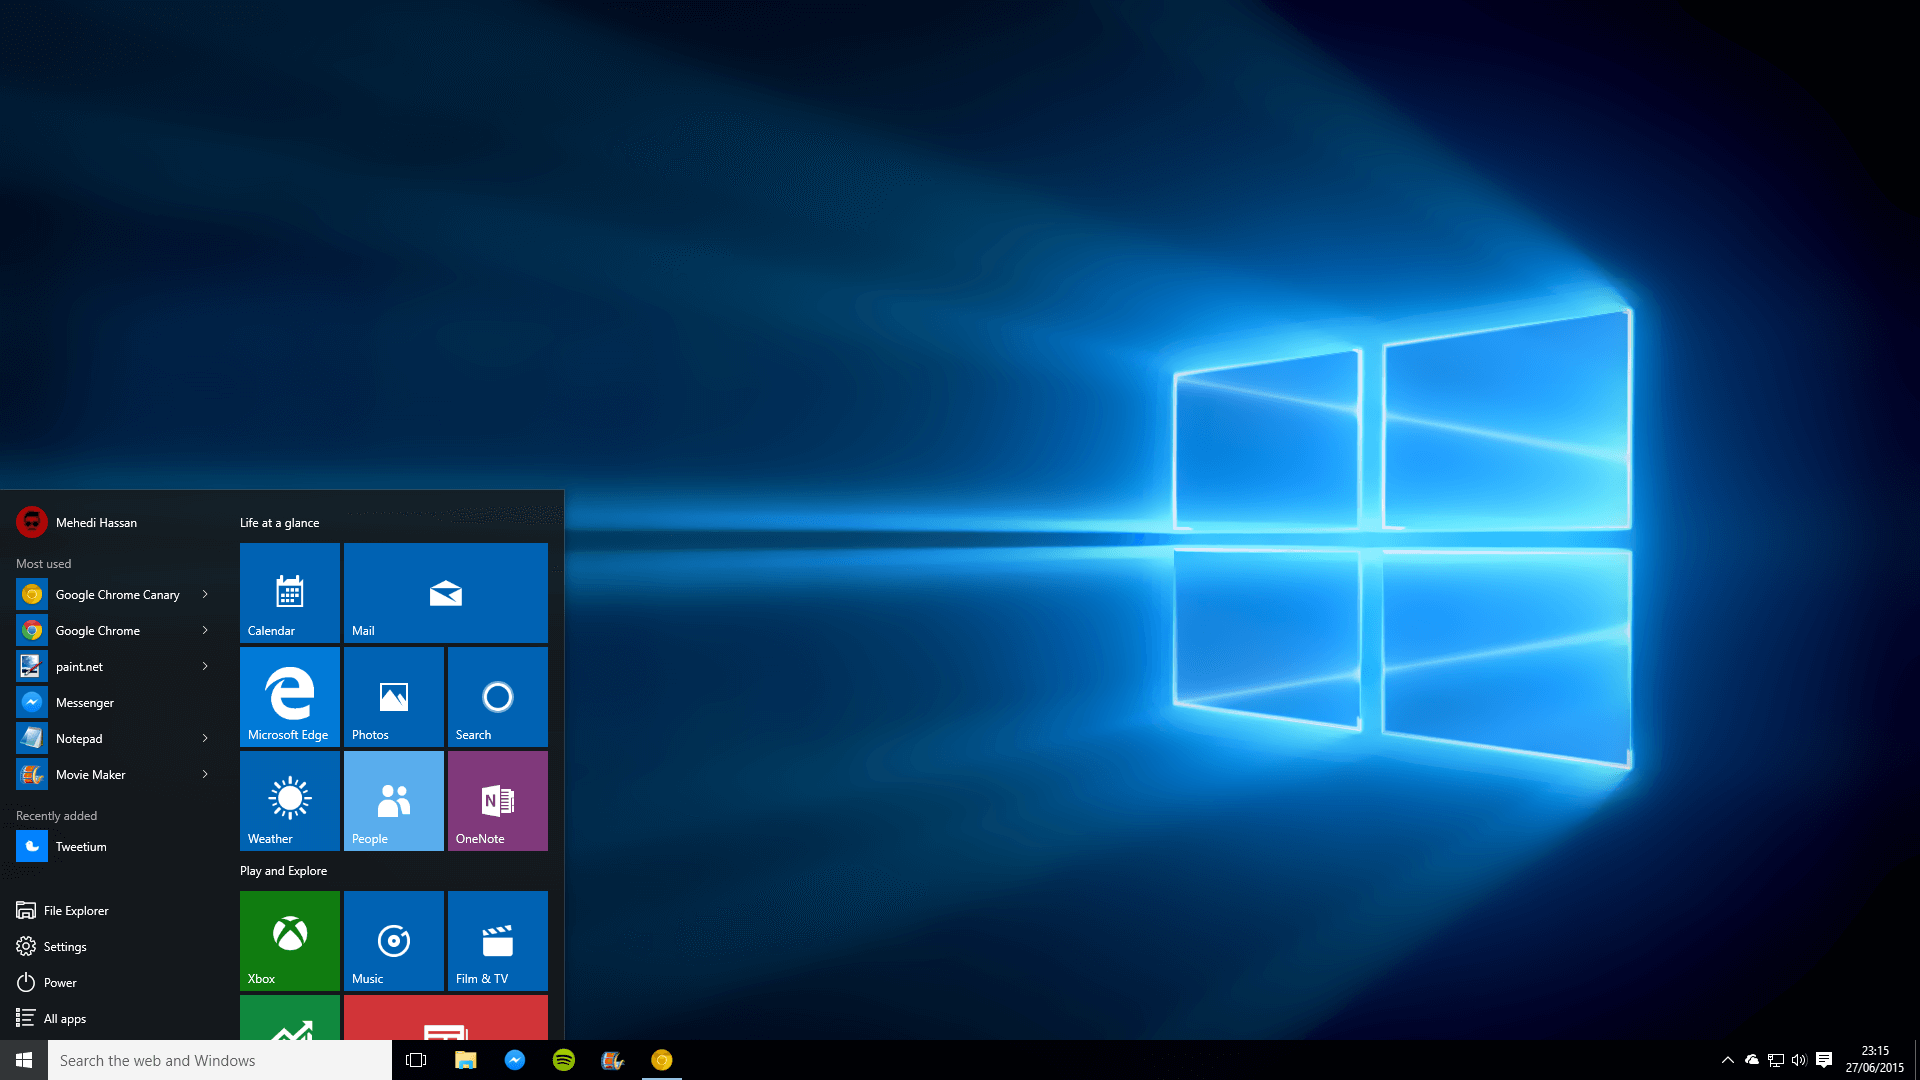 Windows 10 Testbericht, Windows 10 Kritik, Windows 10 Erfahrungsbericht, Windows 10 Betriebssystem, Windows 10 update